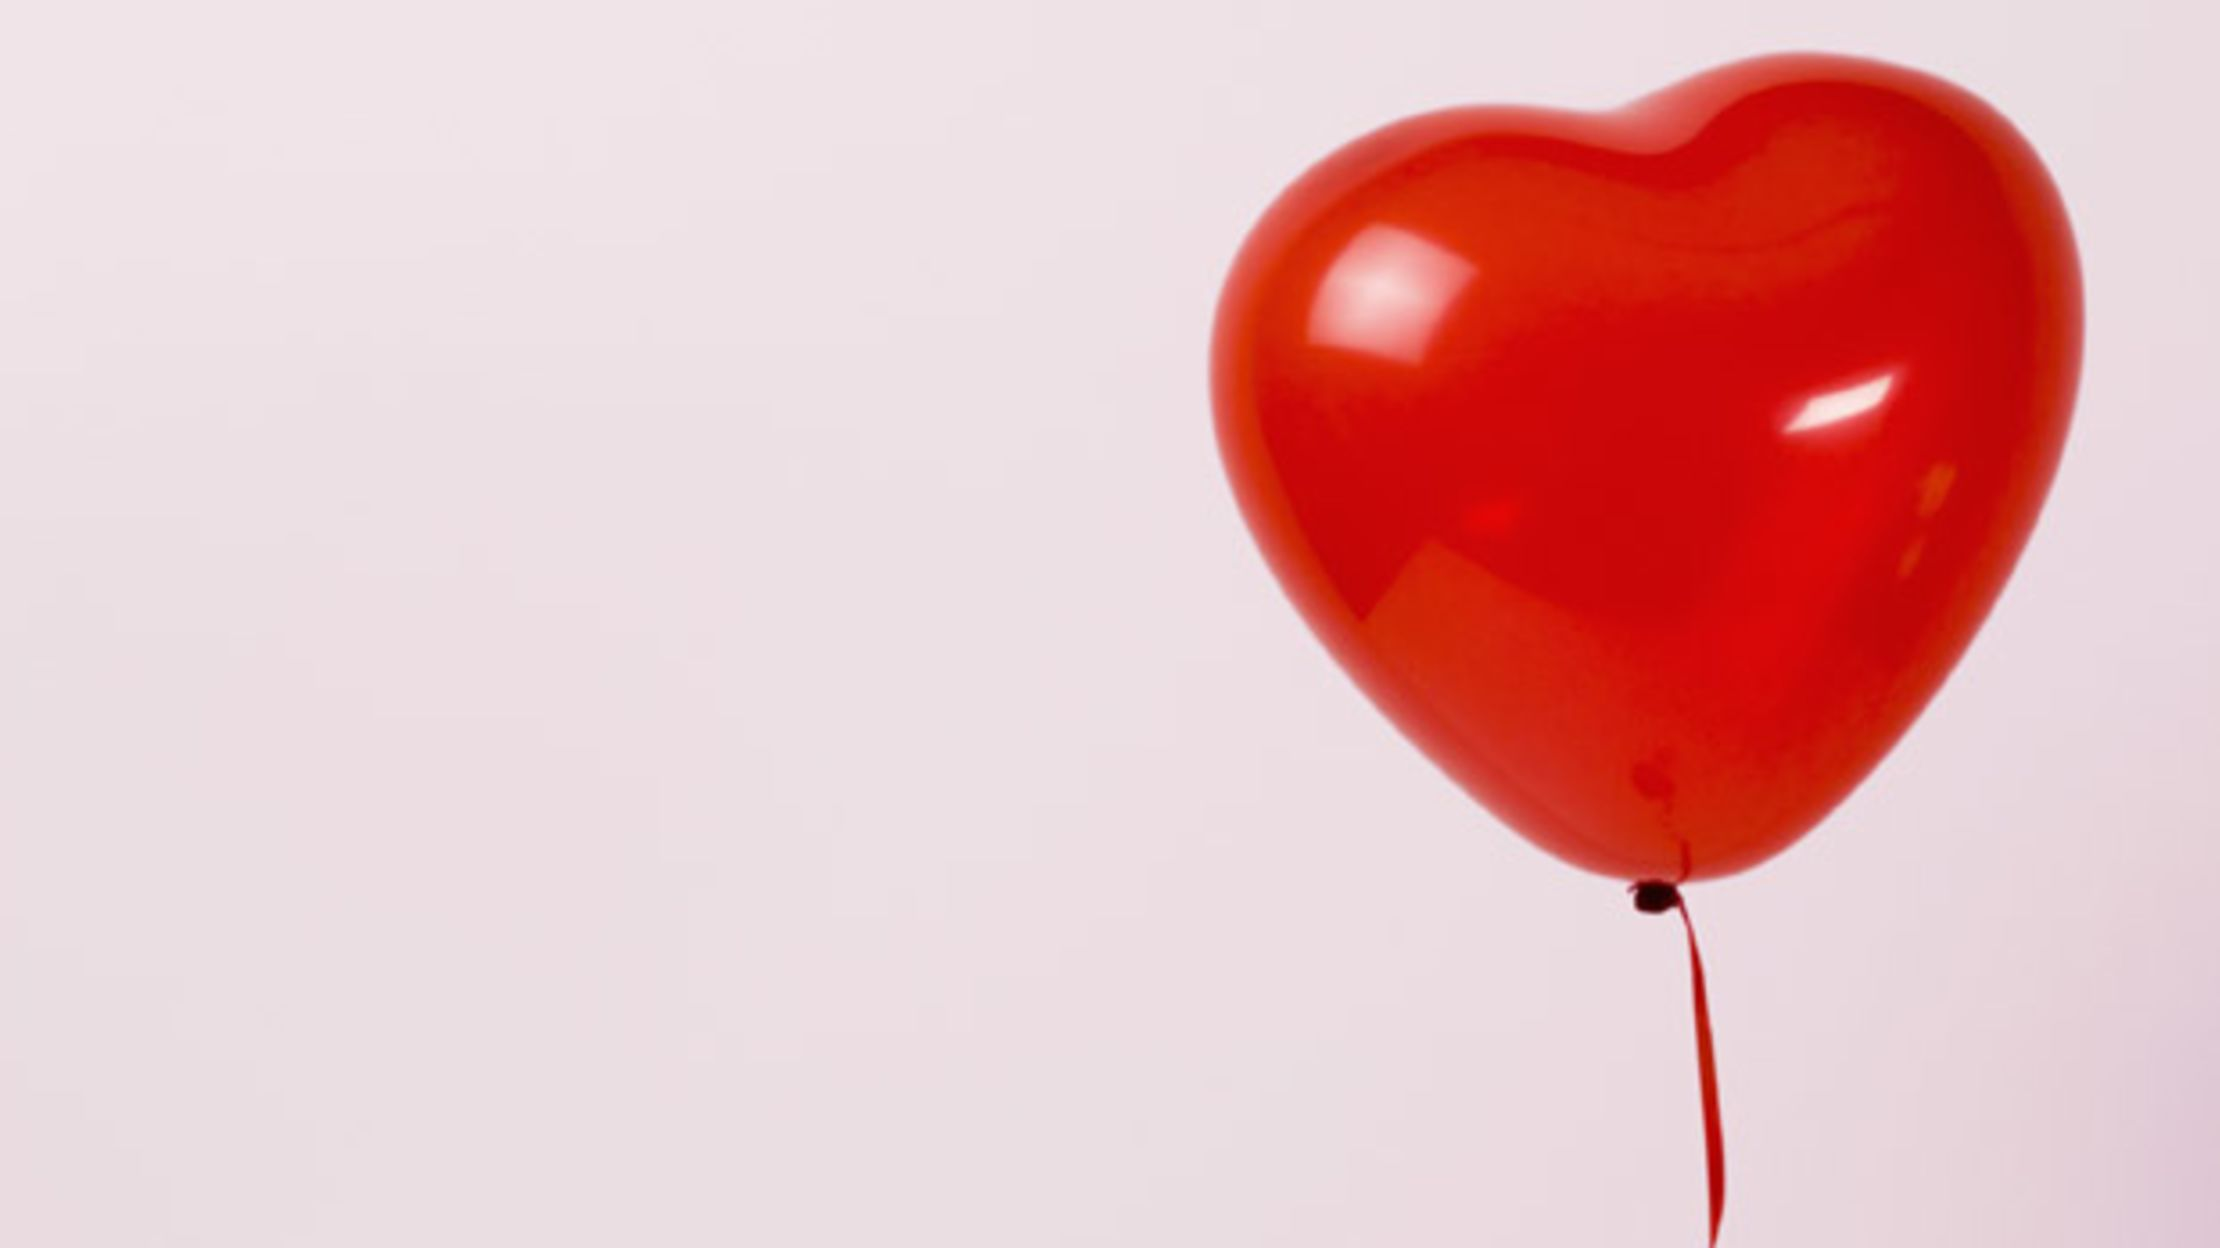 11 Cardiac Facts To Take To Heart Mental Floss